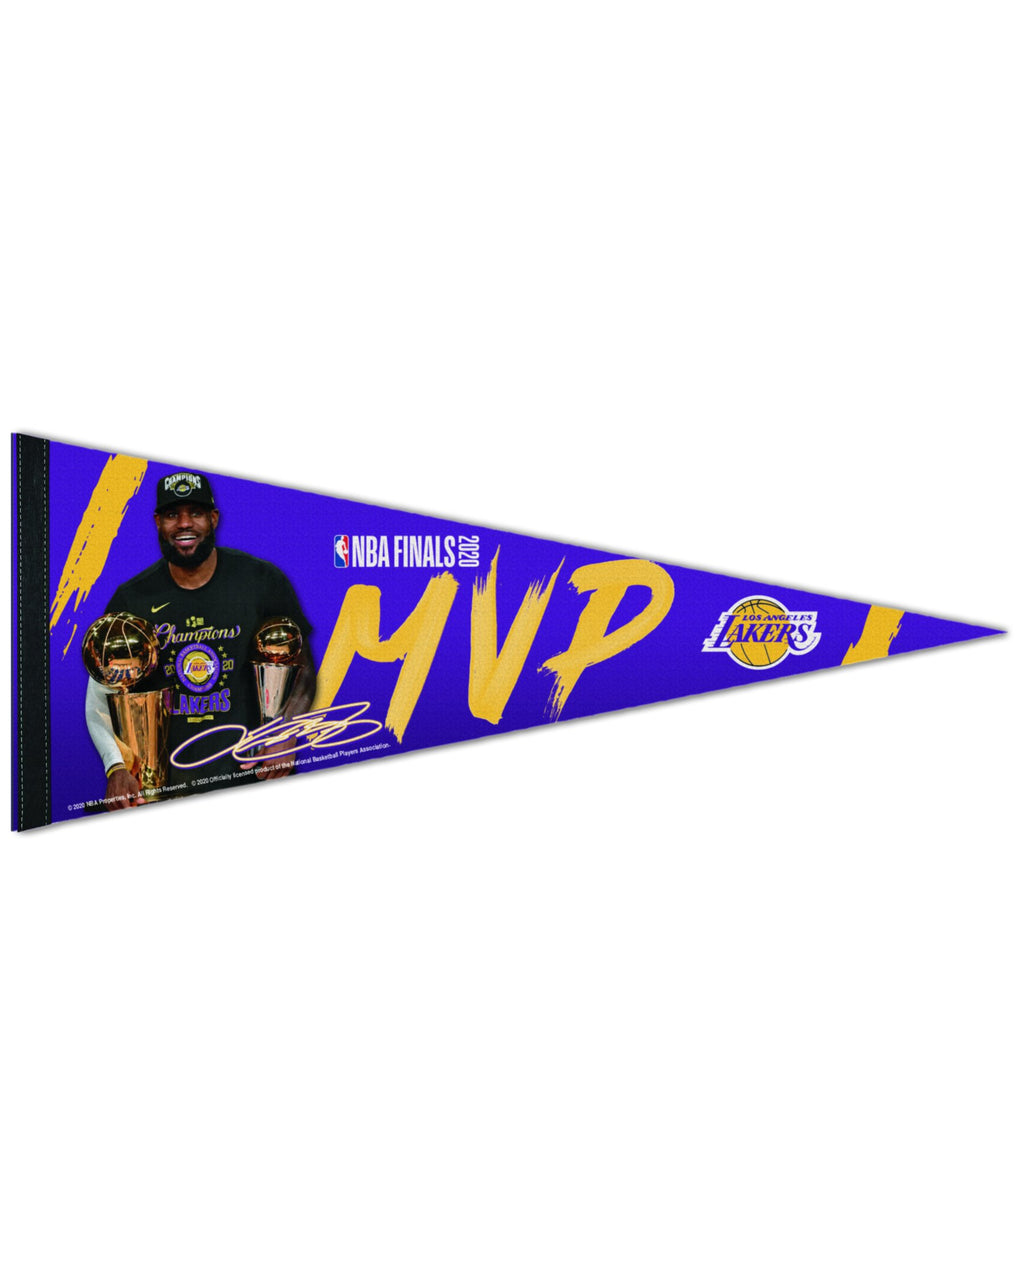 LAKERS JAMES FINALS MVP PENNANT